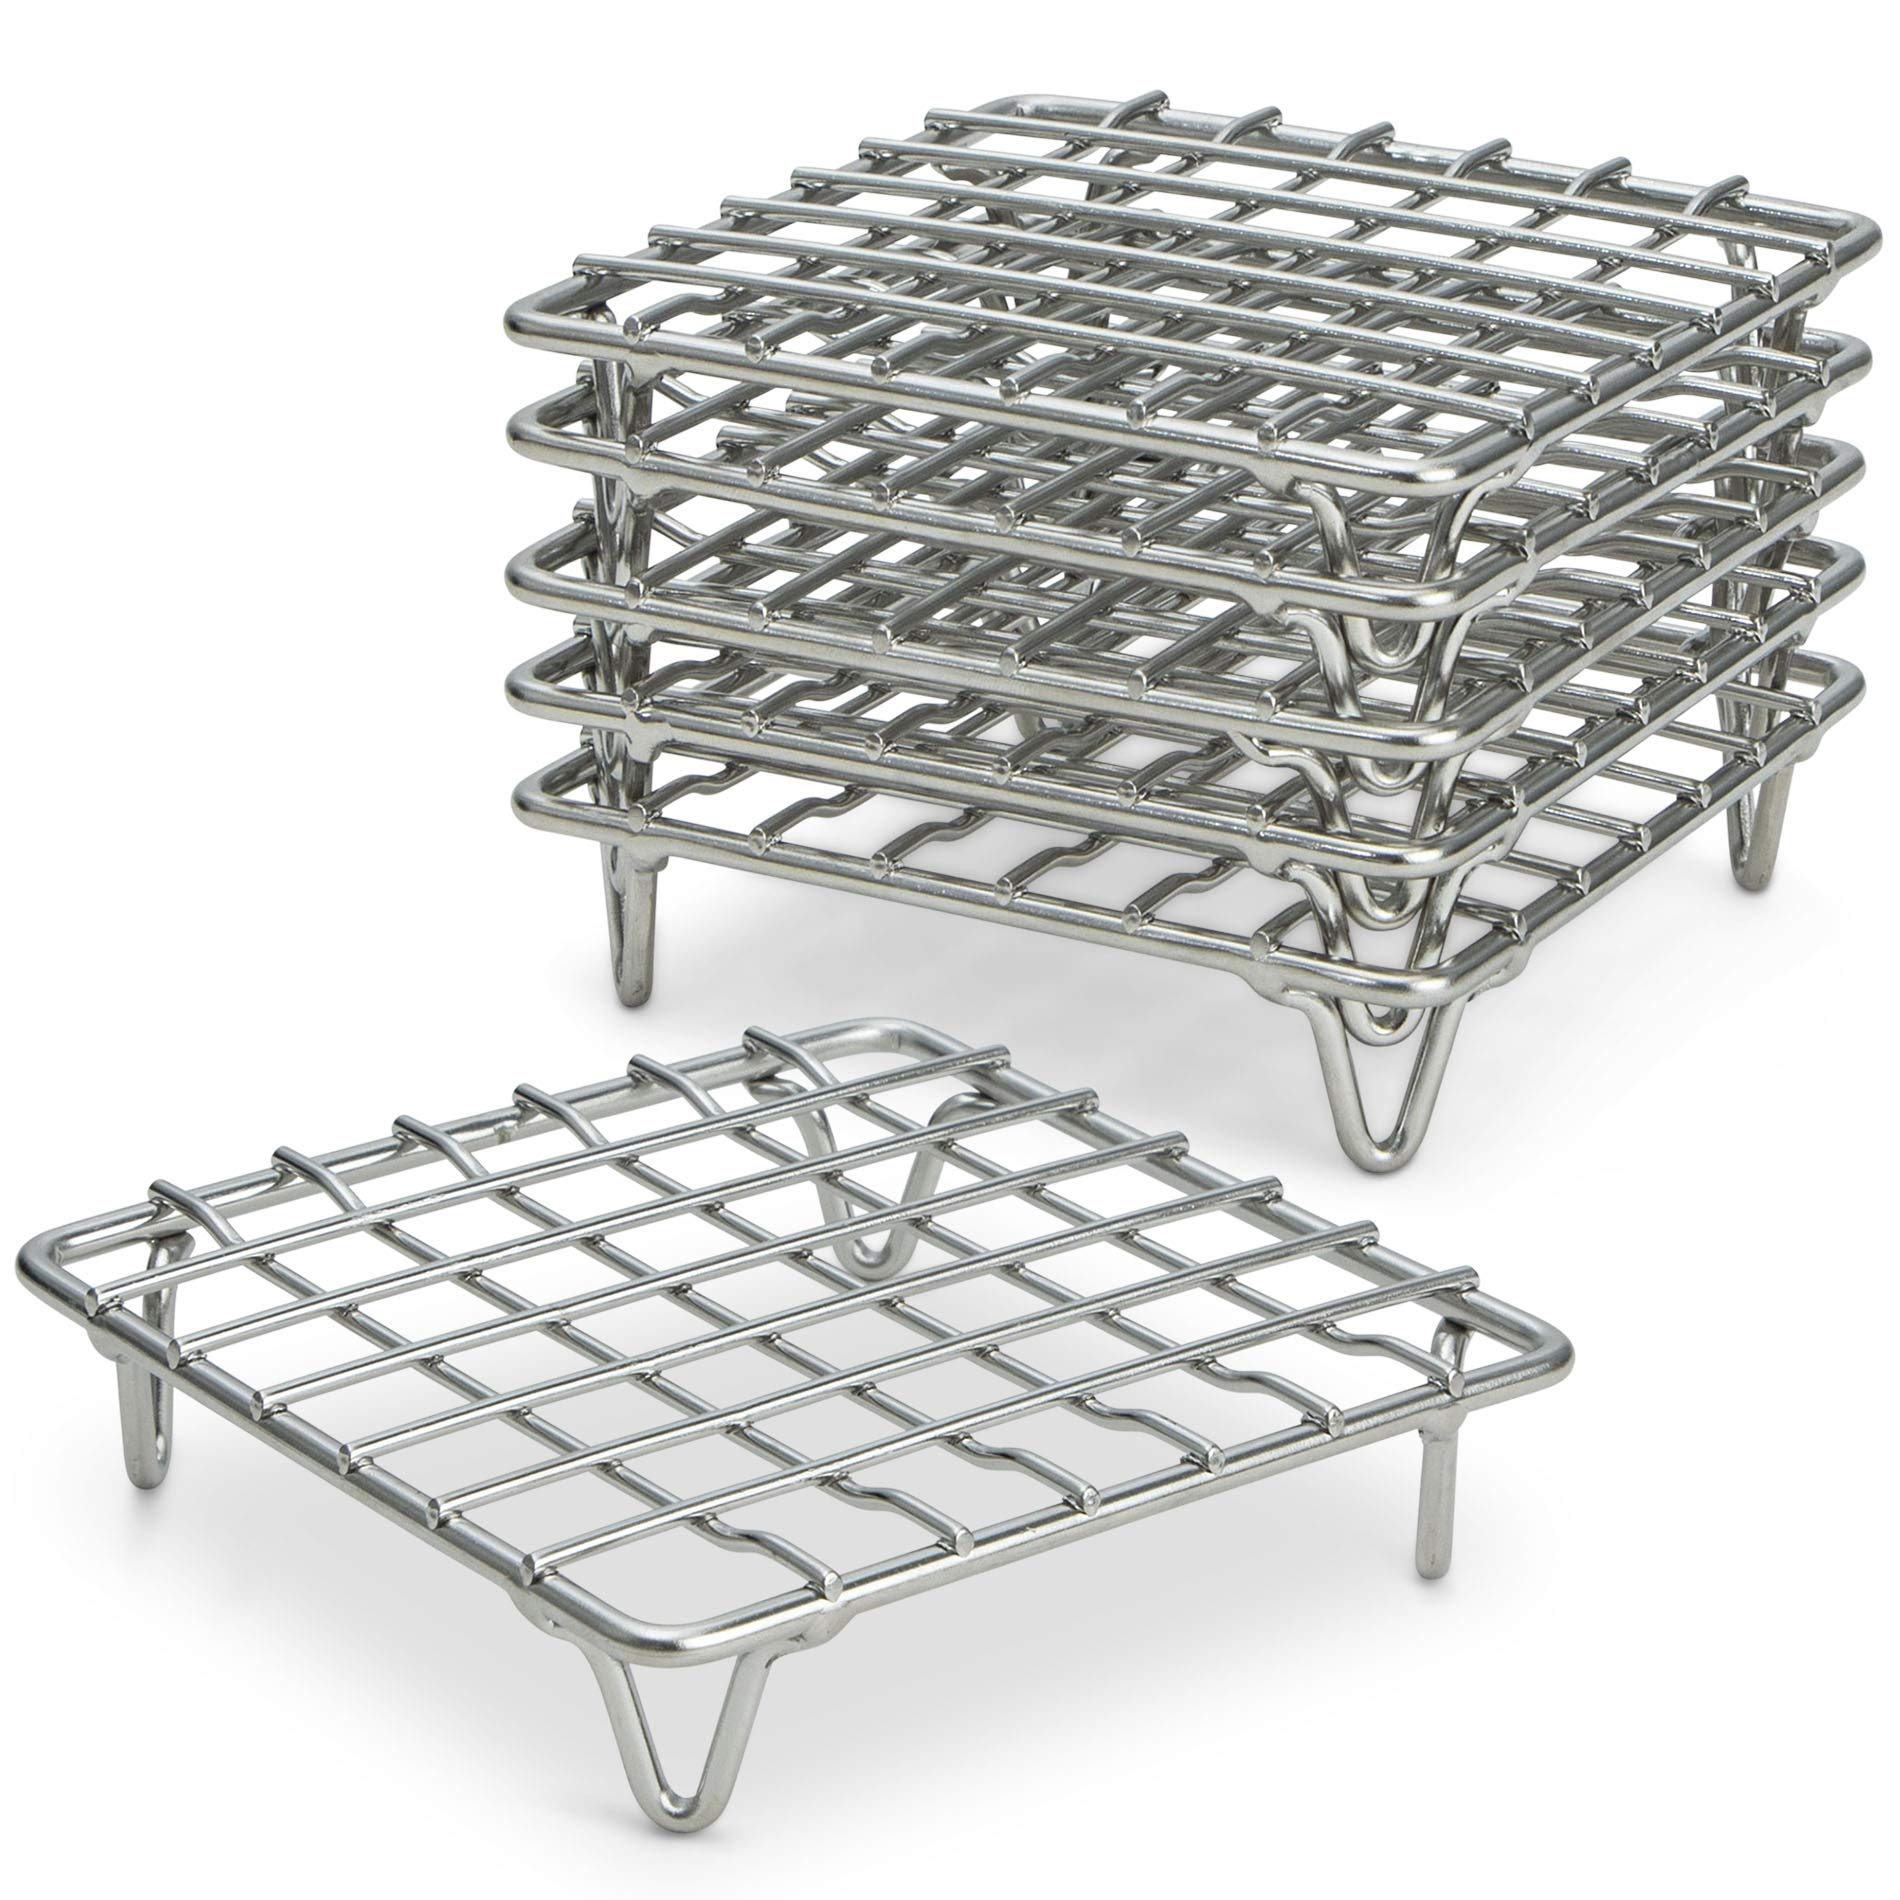 ARROW & EAVES Mini Stainless Steel Cooking and Cooling Rack, Trivets, Set of 6 - Small, 4'' Metal Trivet Stand for Round Pots, Pans, Hot Dishes, Instant Pot, Toaster Oven, Steamer Cooking, Baking Racks by ARROW & EAVES